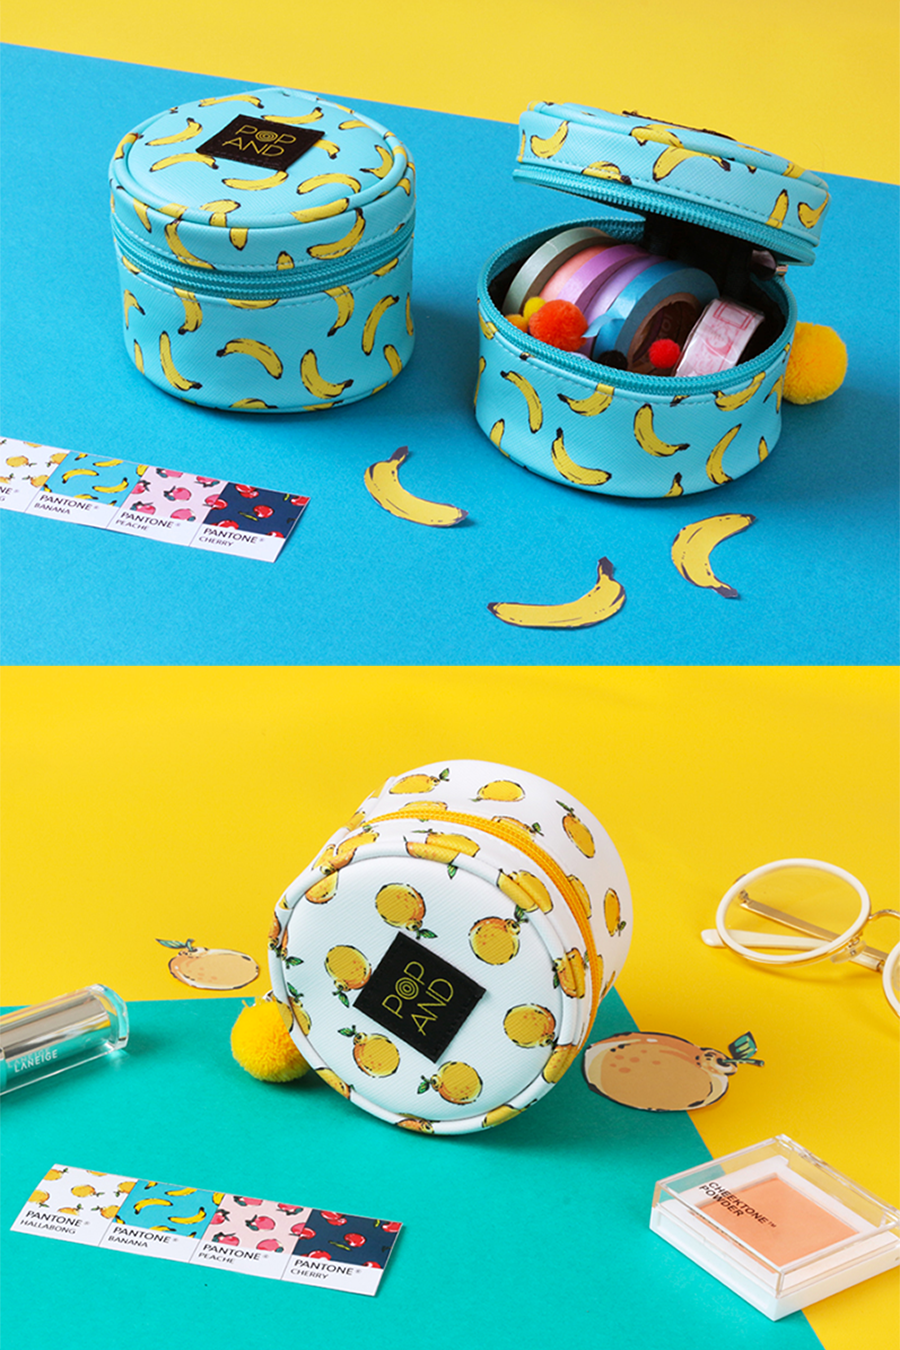 Once you use it once, you'd be surprised at how much item this can hold and help you stay organized. The POPAND Pom Pom Round Pouch is a colorful companion that'll stay with you for a long time.